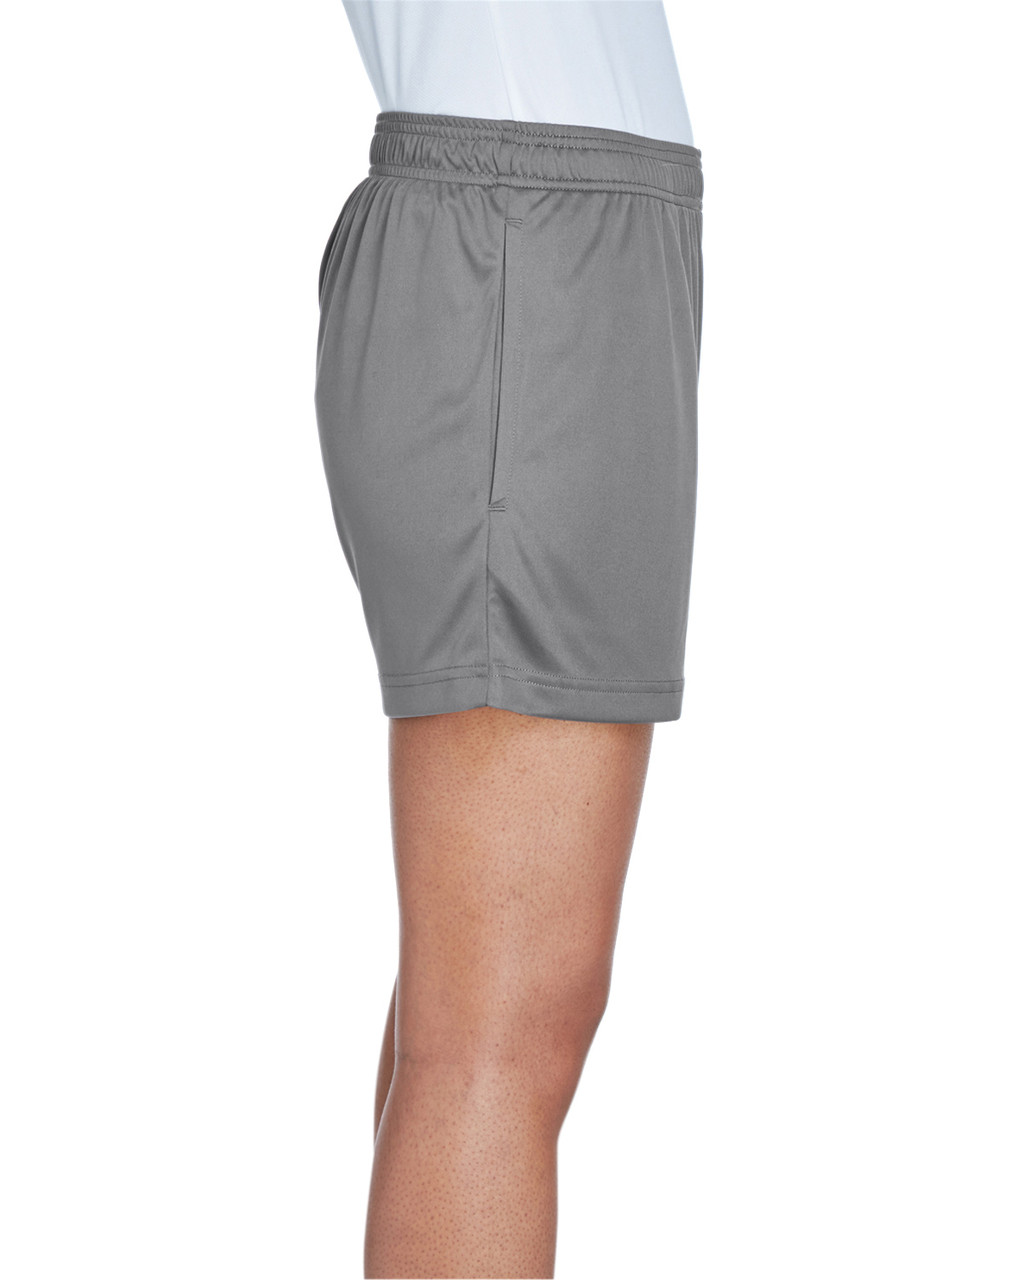 Sport Graphite - Side, TT11SHW Team 365 Ladies' Zone Performance Short | T-shirt.ca